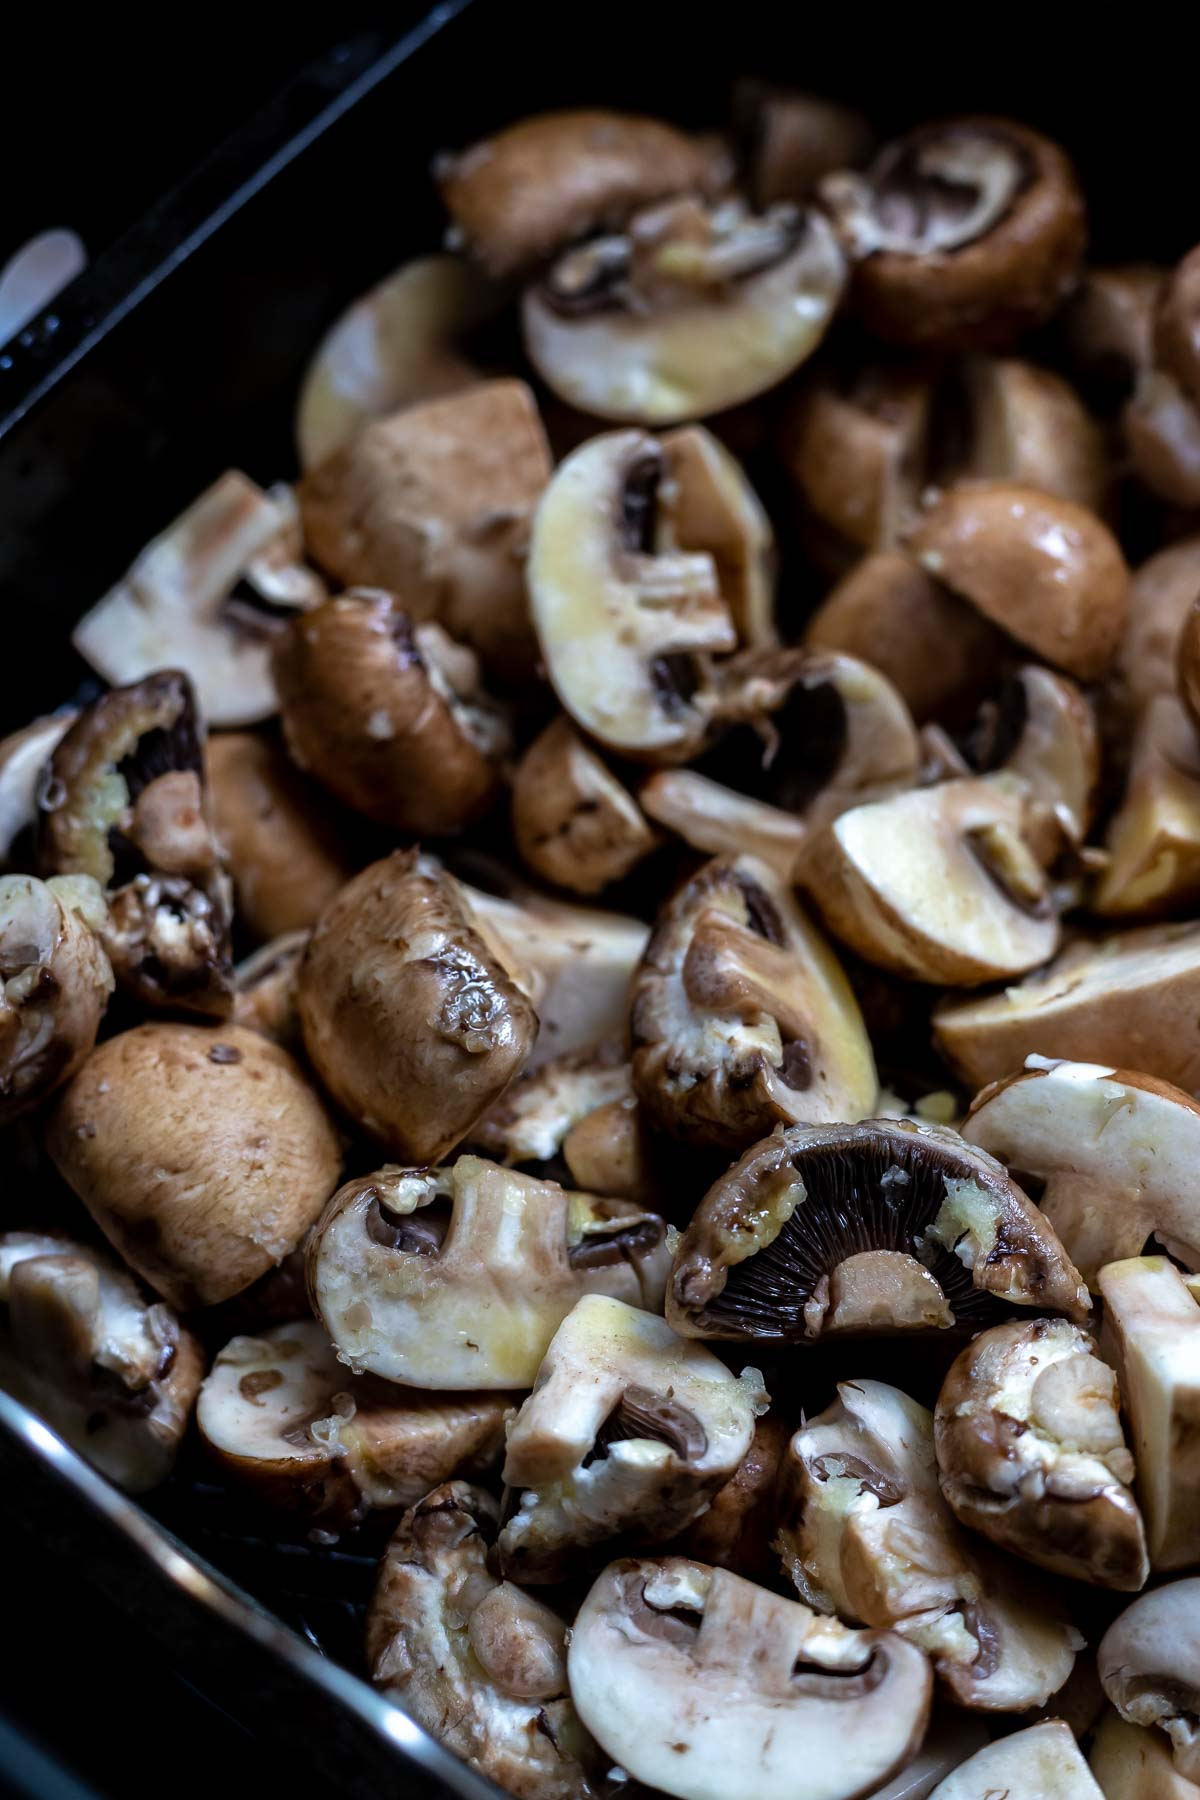 raw mushrooms in air fryer basket